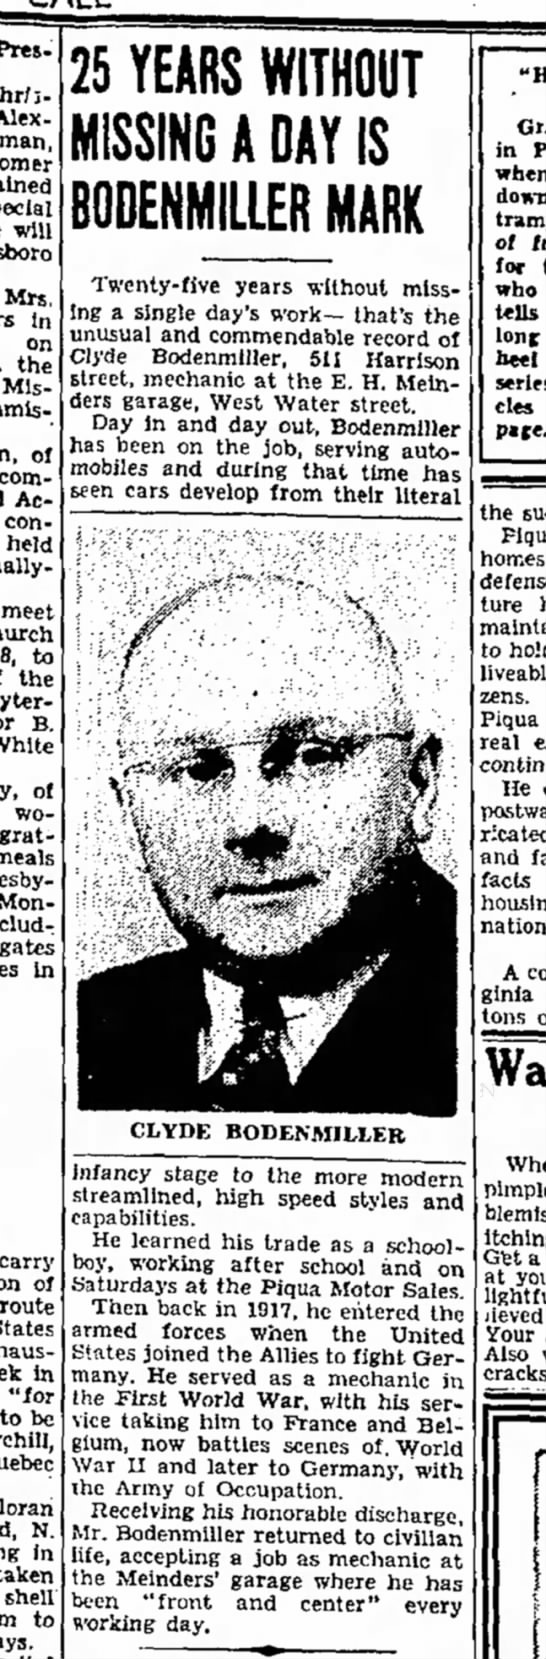 Clyde Bodenmiller 1944 work article - Presbyterian Chr; - Alex - Homer special will...